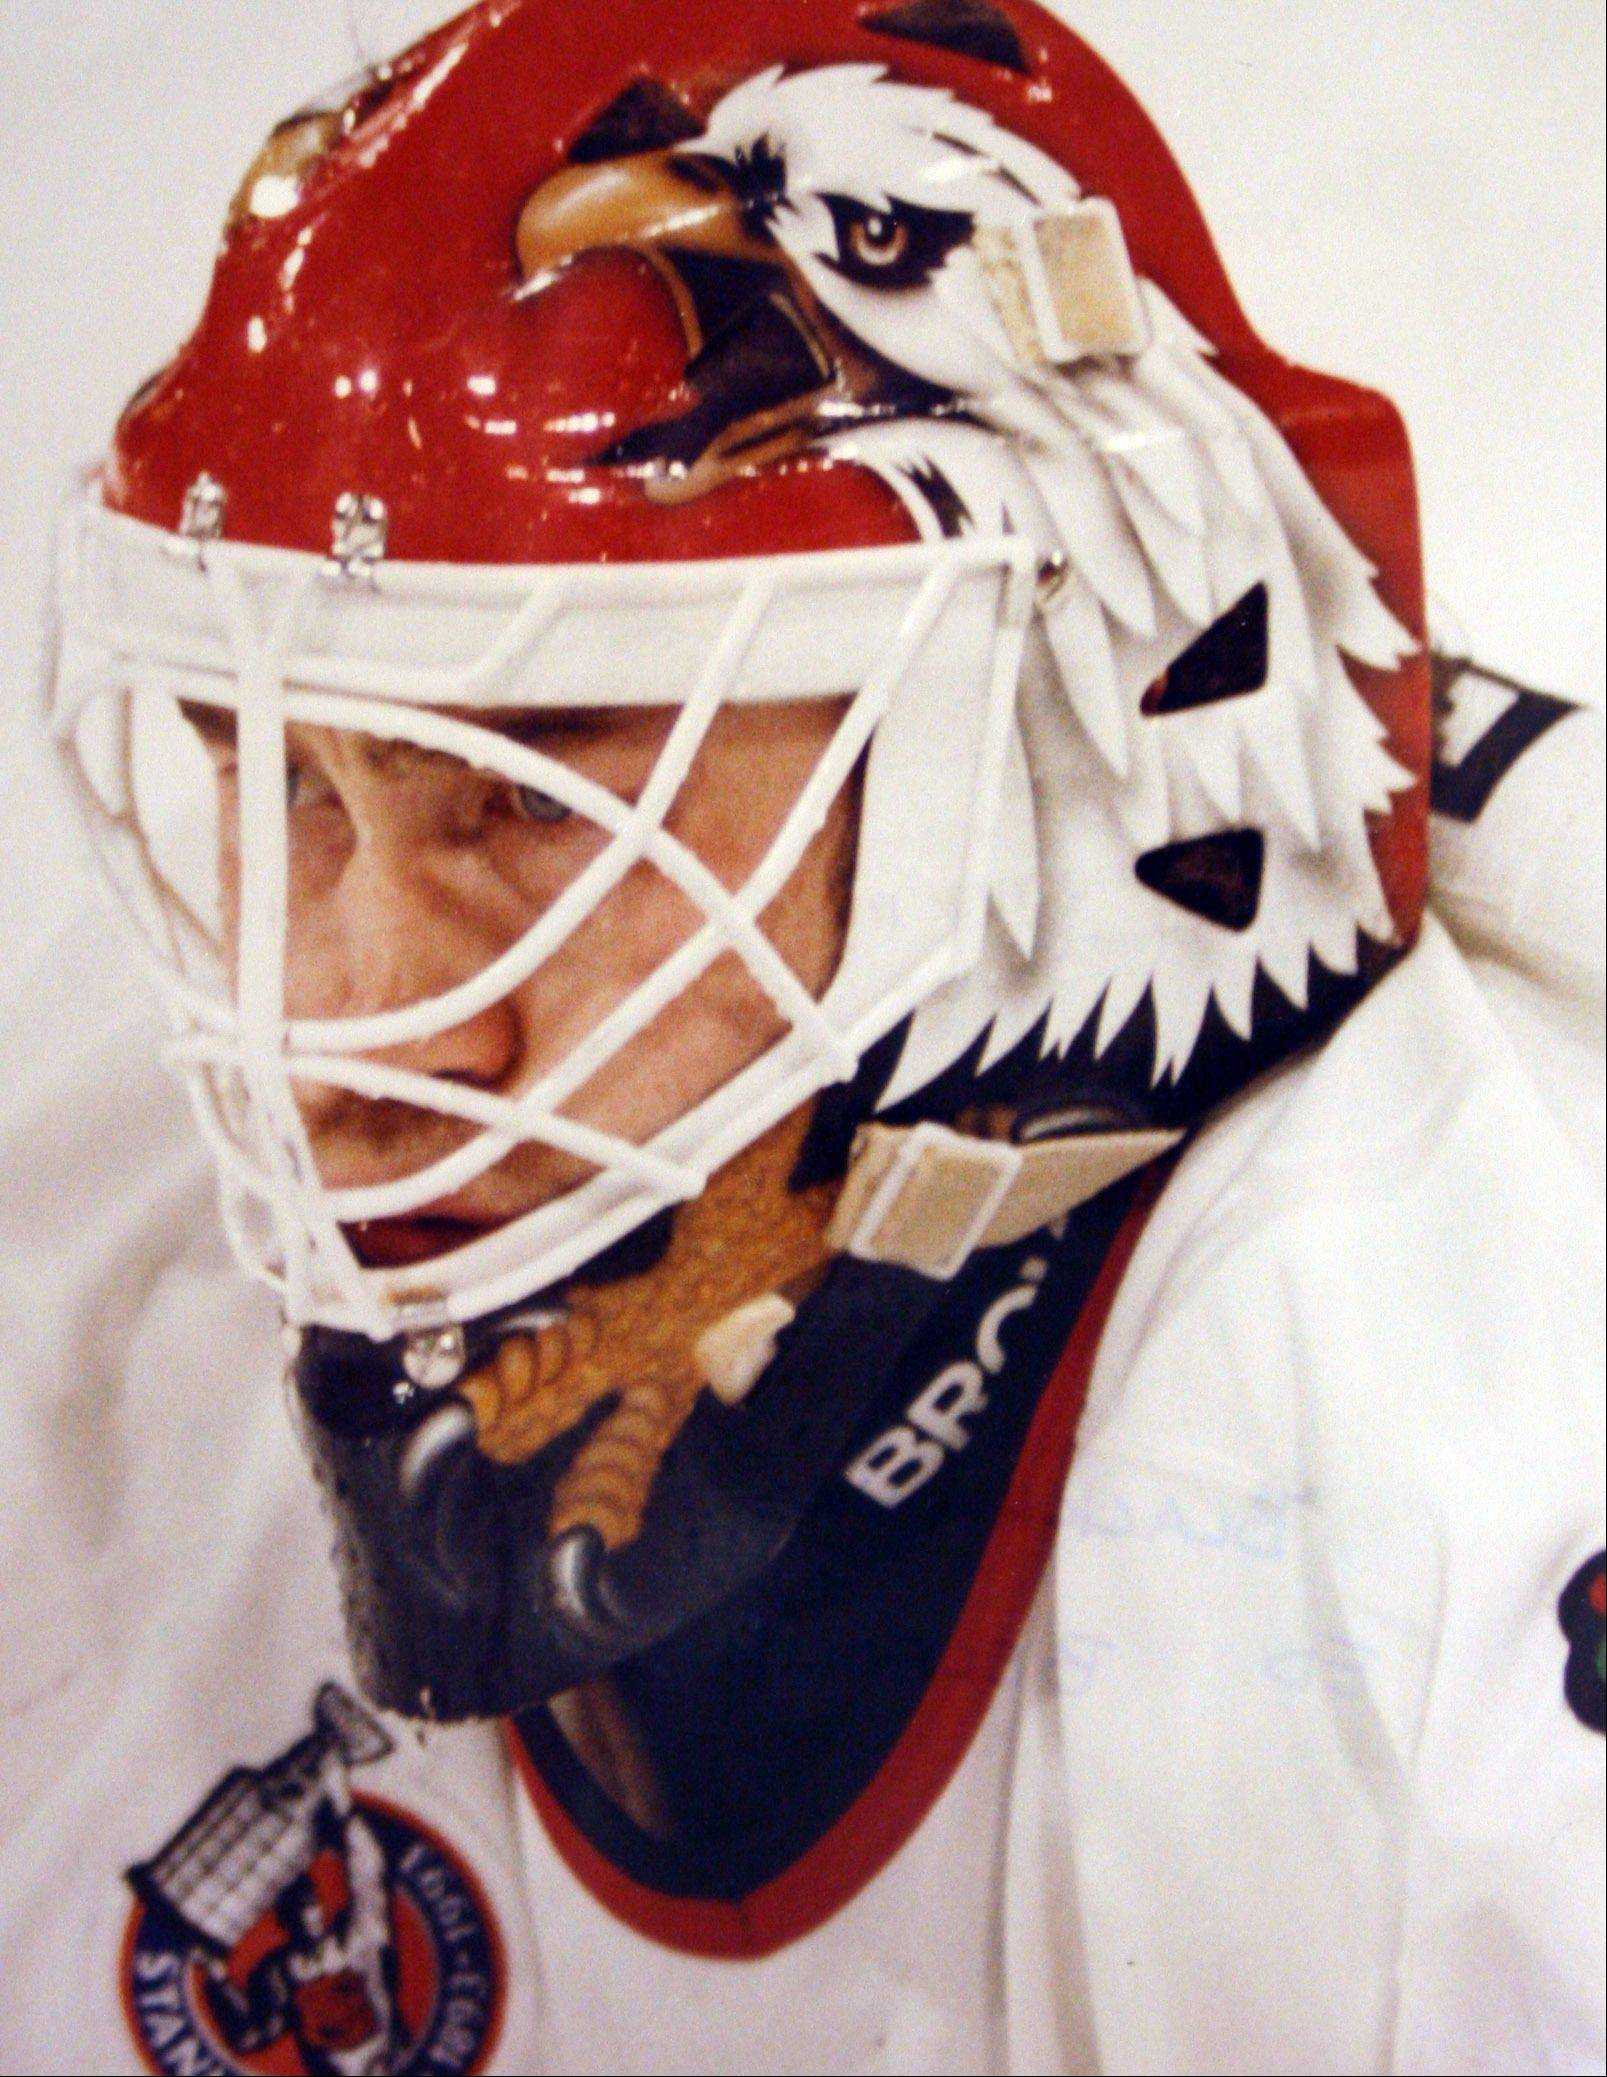 Ed Belfour, seen here in 1993, was named the NHL's best rookie in 1991 as a member of the Blackhawks.